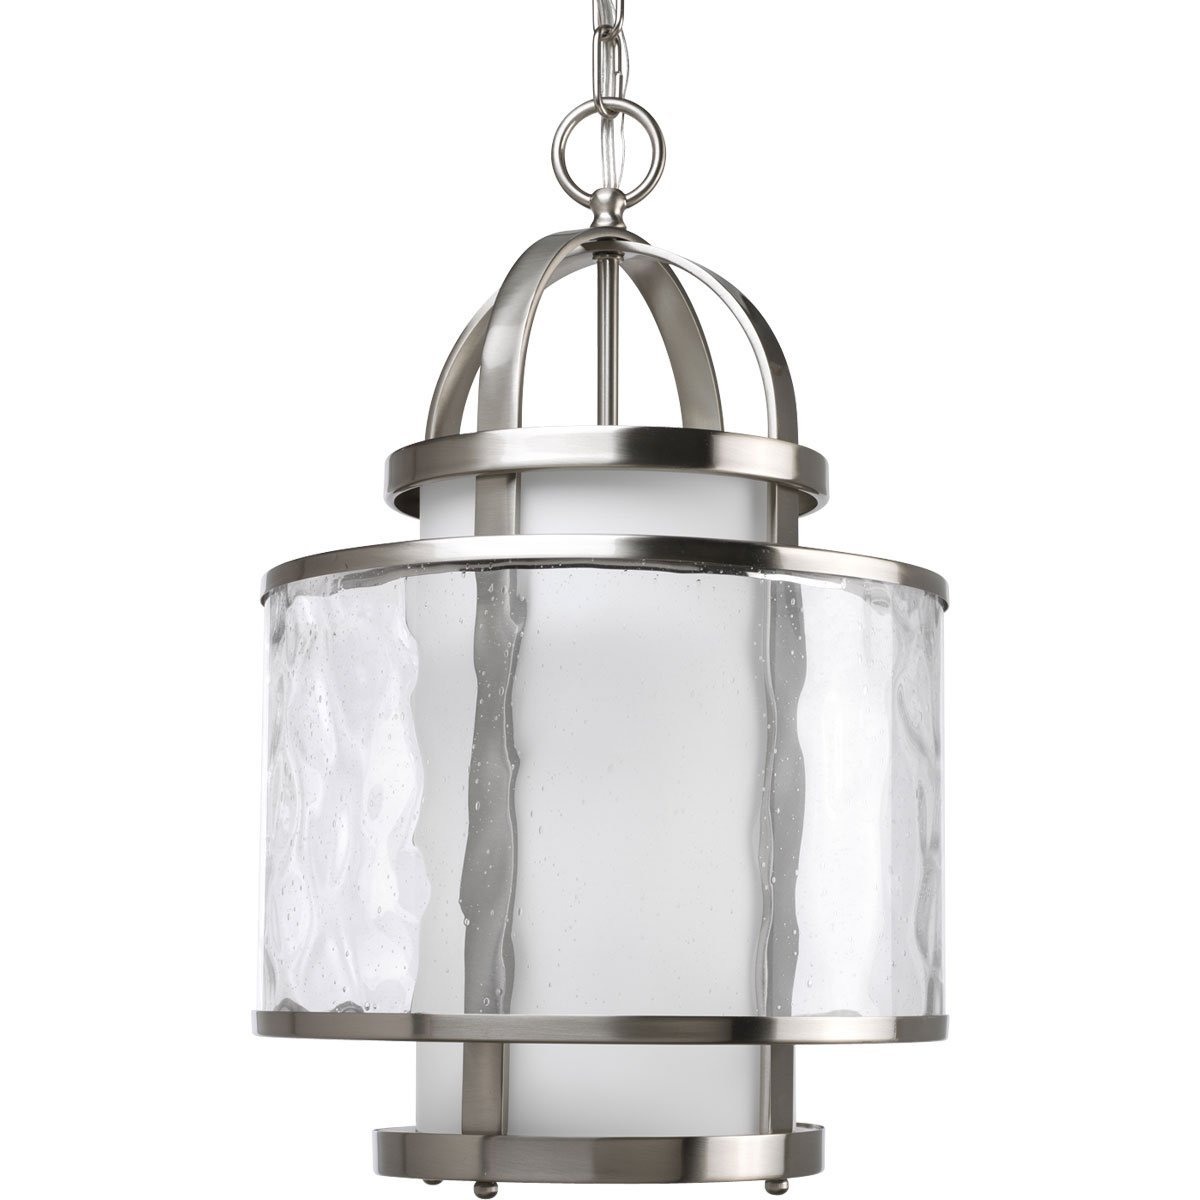 Progress Lighting P3701-09 1-Light Bay Court Foyer Fixture, Brushed Nickel